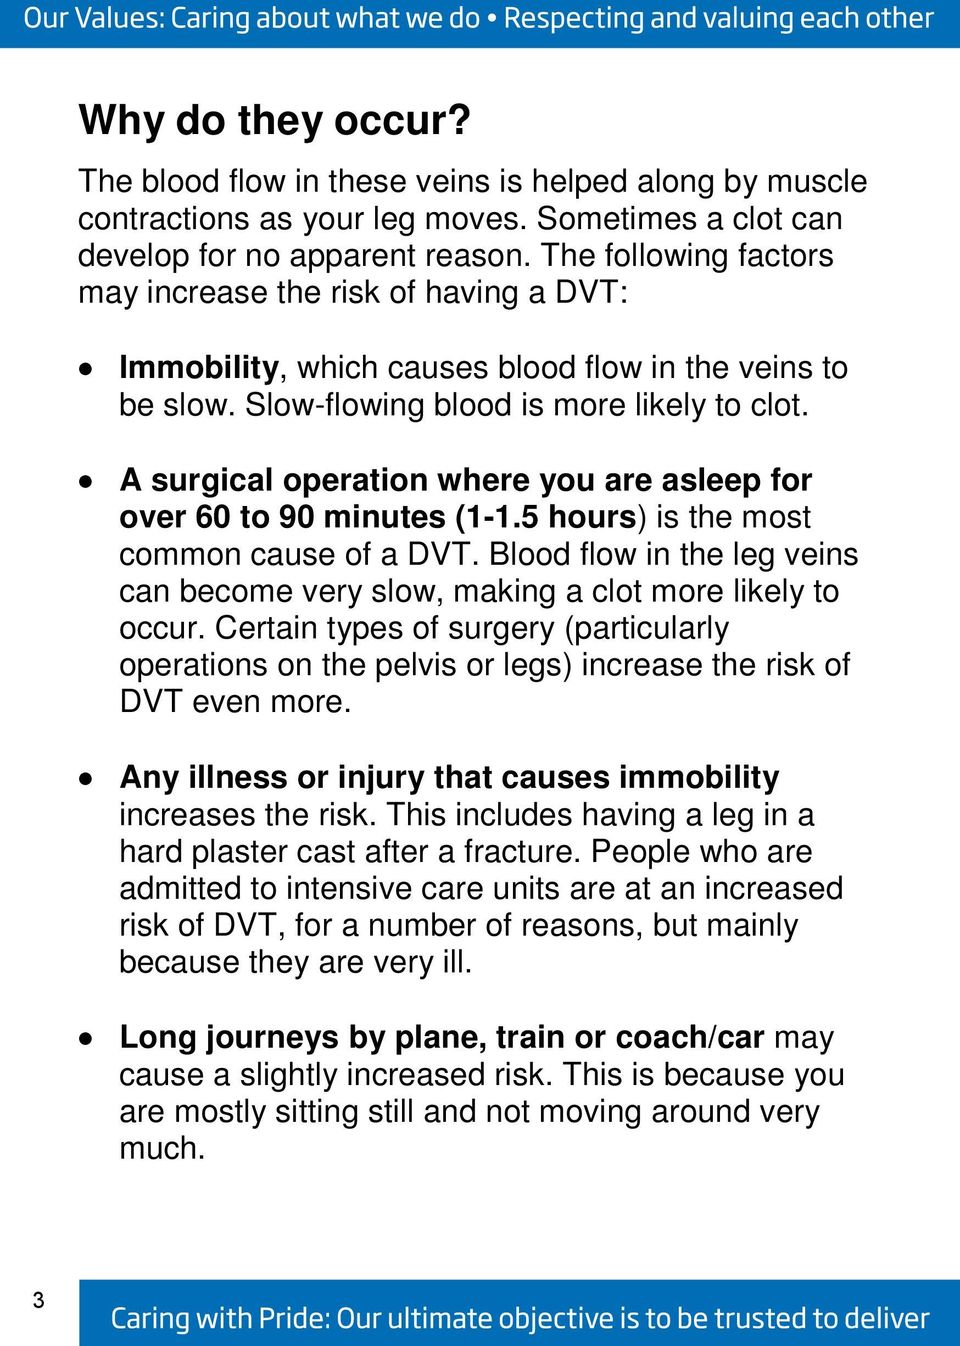 A surgical operation where you are asleep for over 60 to 90 minutes (1-1.5 hours) is the most common cause of a DVT.